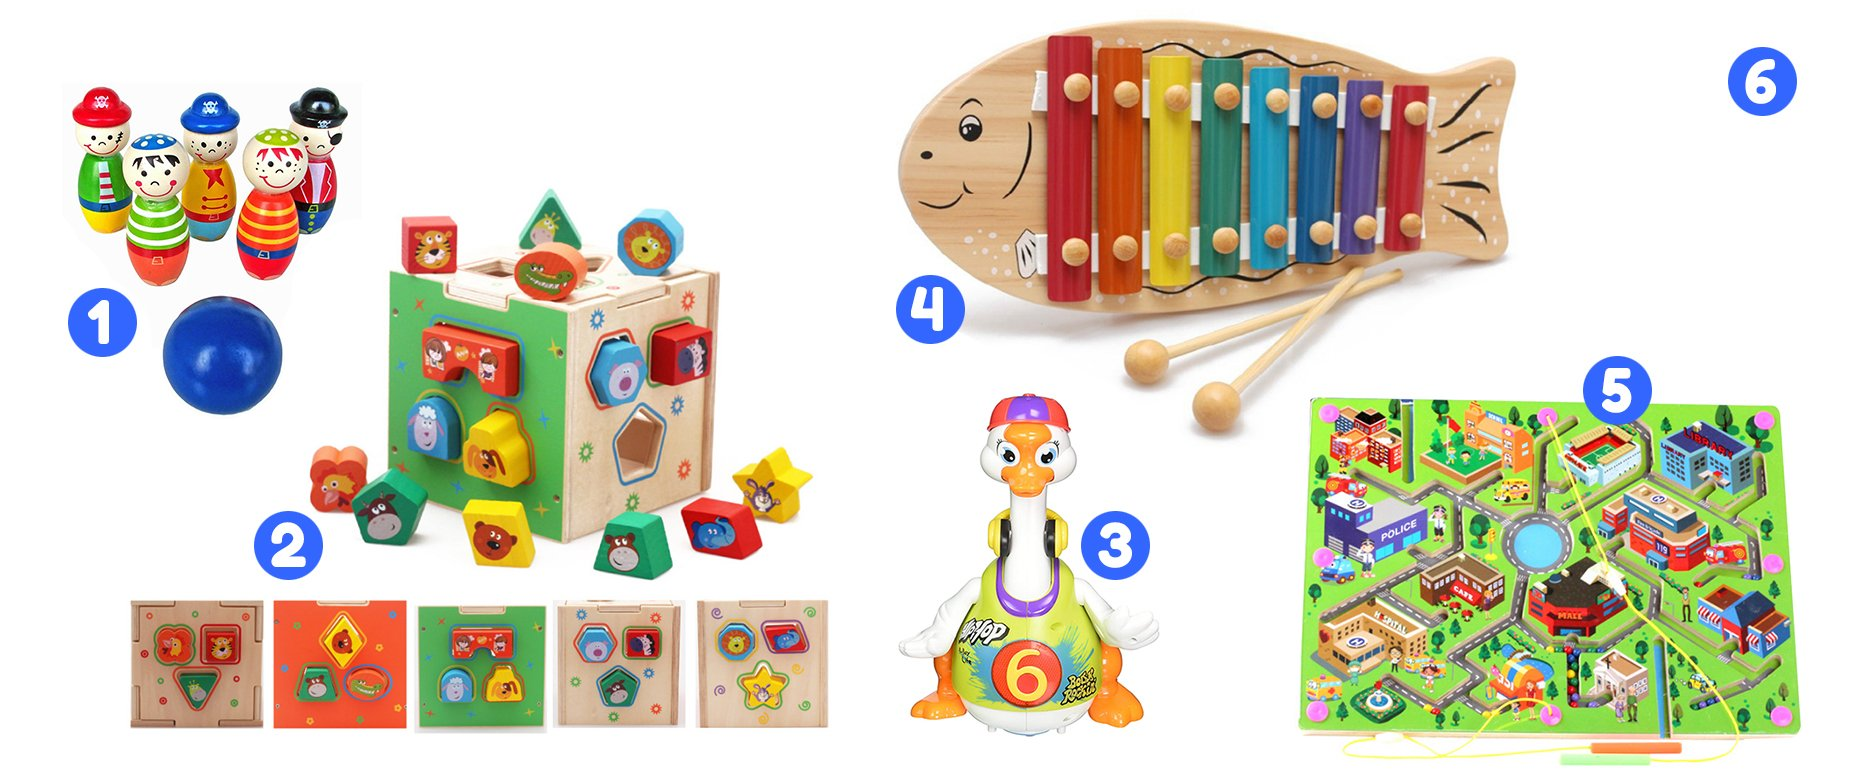 SPEC Kid Club Curated Toy Collection for Ages 18 to 21 Months